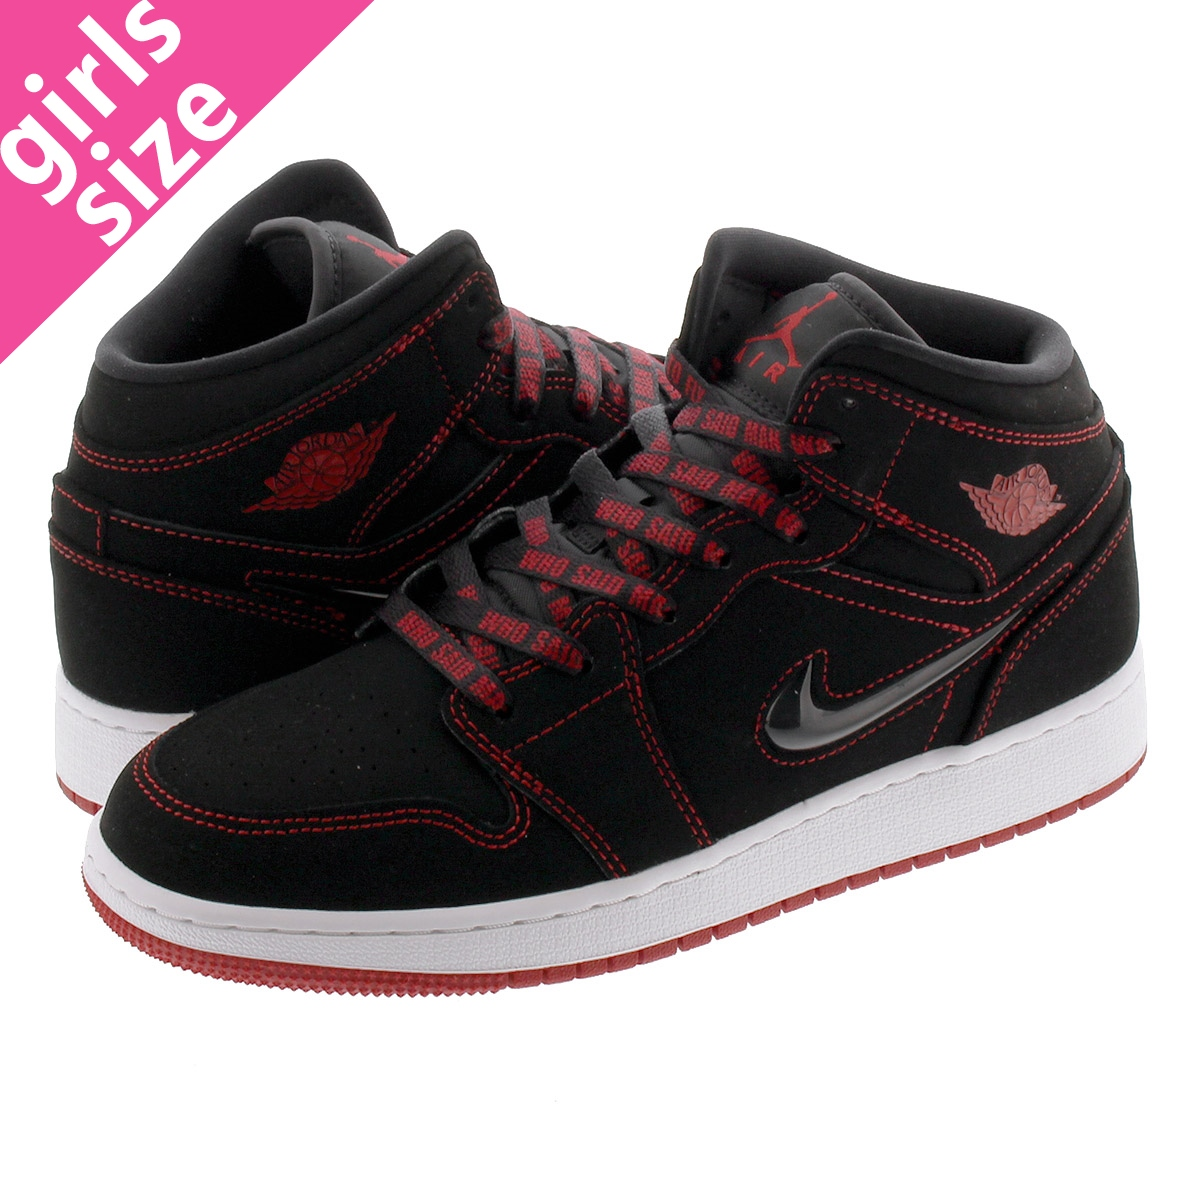 NIKE AIR JORDAN 1 MID SE FRLS GS 【COME FLY WITH ME】 ナイキ エア ジョーダン 1 ミッド SE フィアレス GSッド SE GS BLACK/GYM RED/WHITE cu6617-062